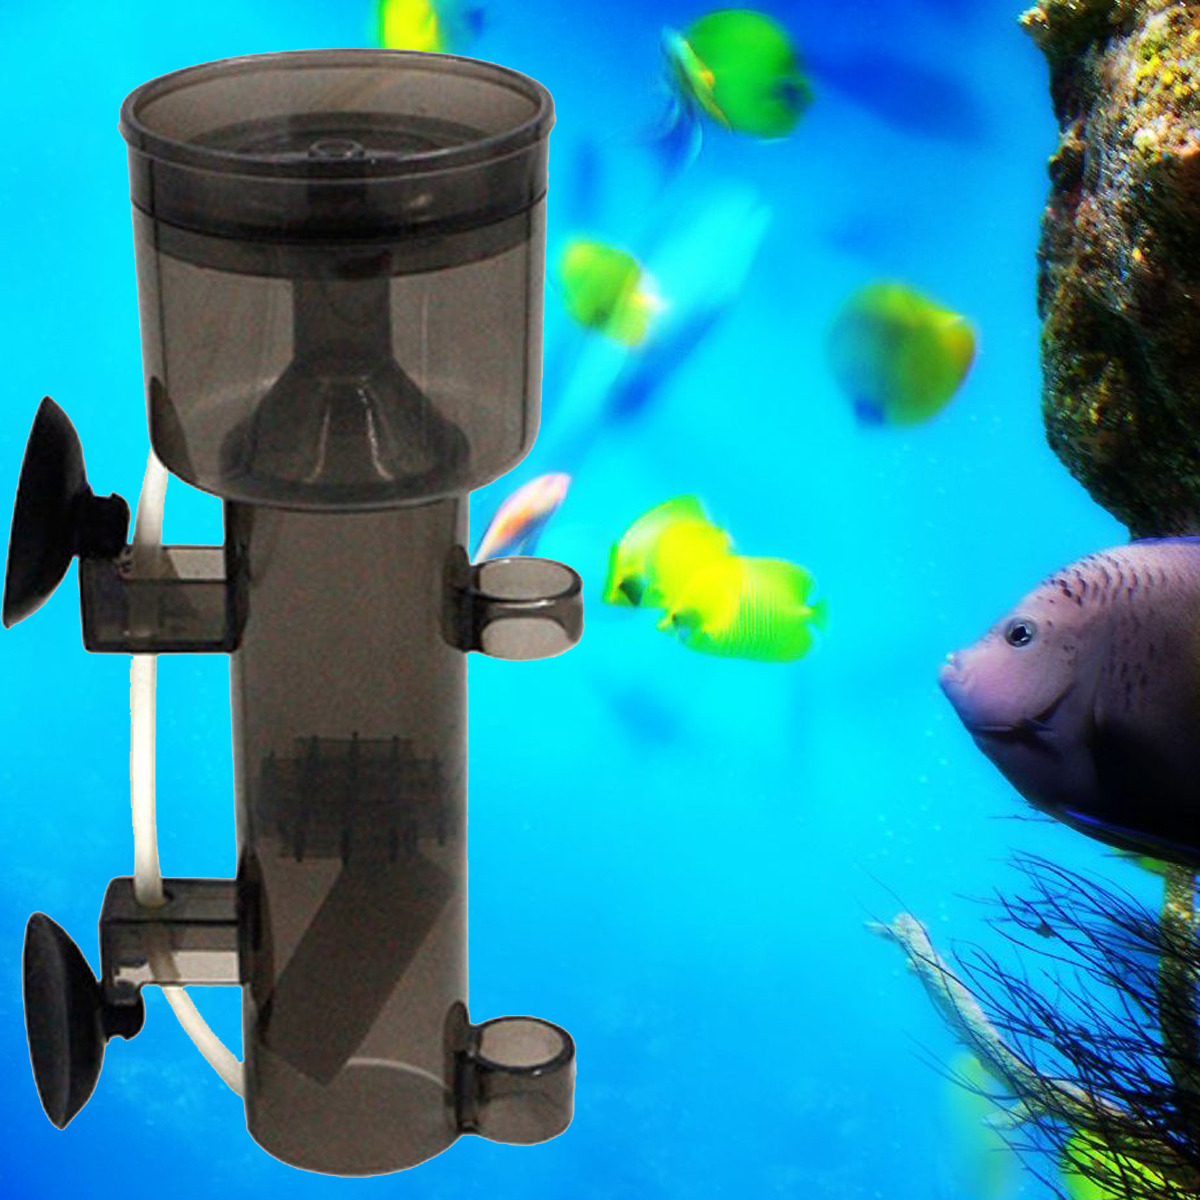 Moaere Fish Tank Protein Skimmer Defoamer fractionator with Suction Cup for Aquarium